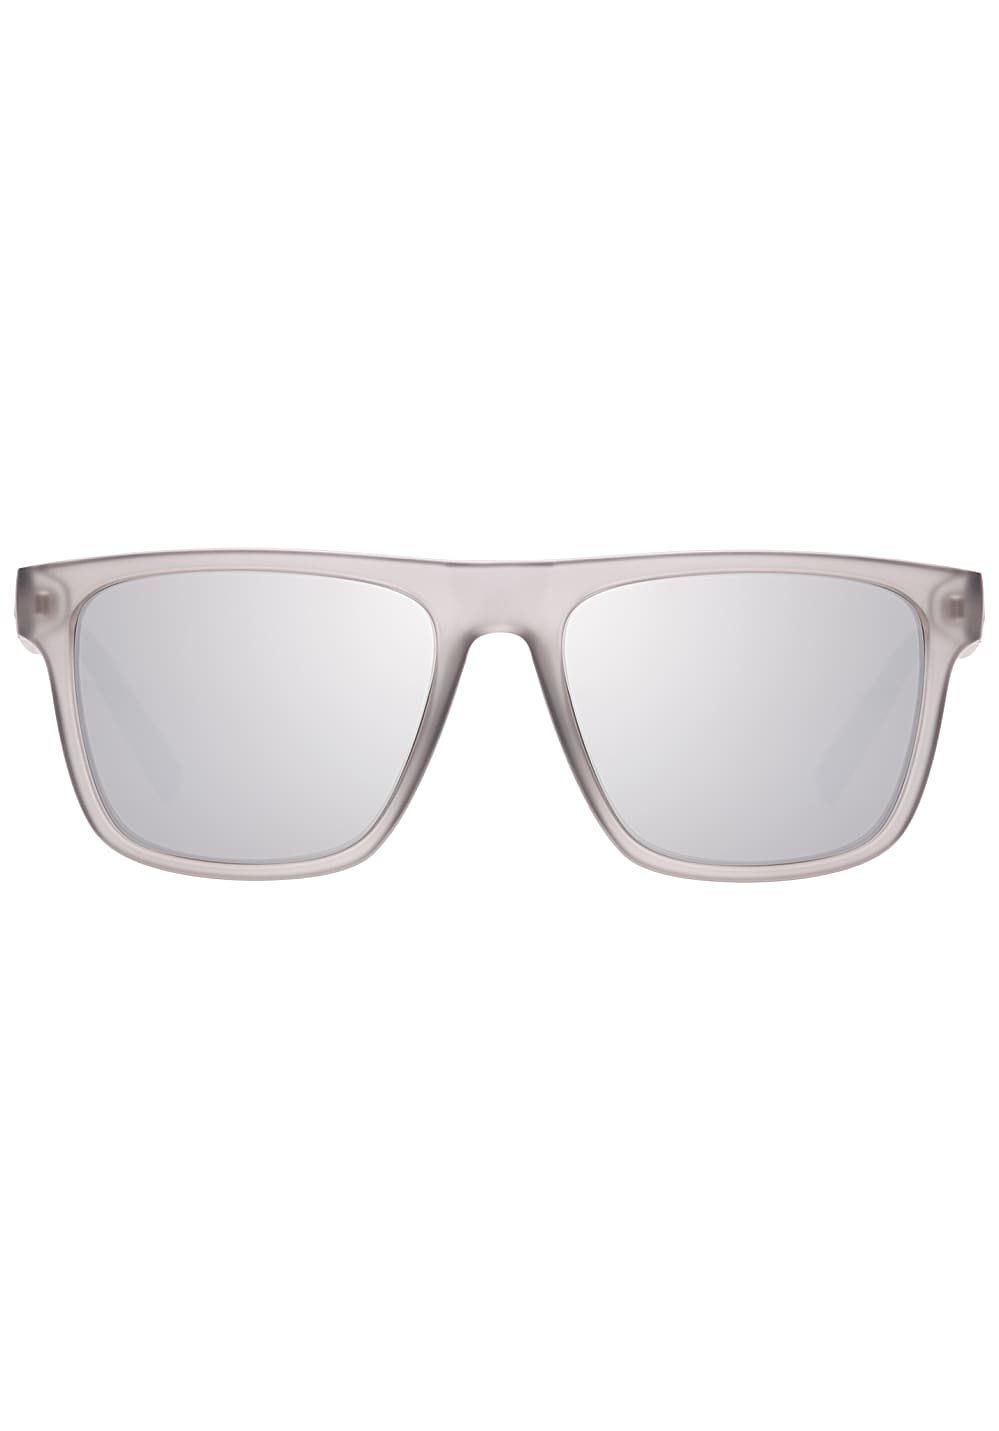 ec230e6eb9 Le Specs The Boss - Sunglasses - Grey - Planet Sports